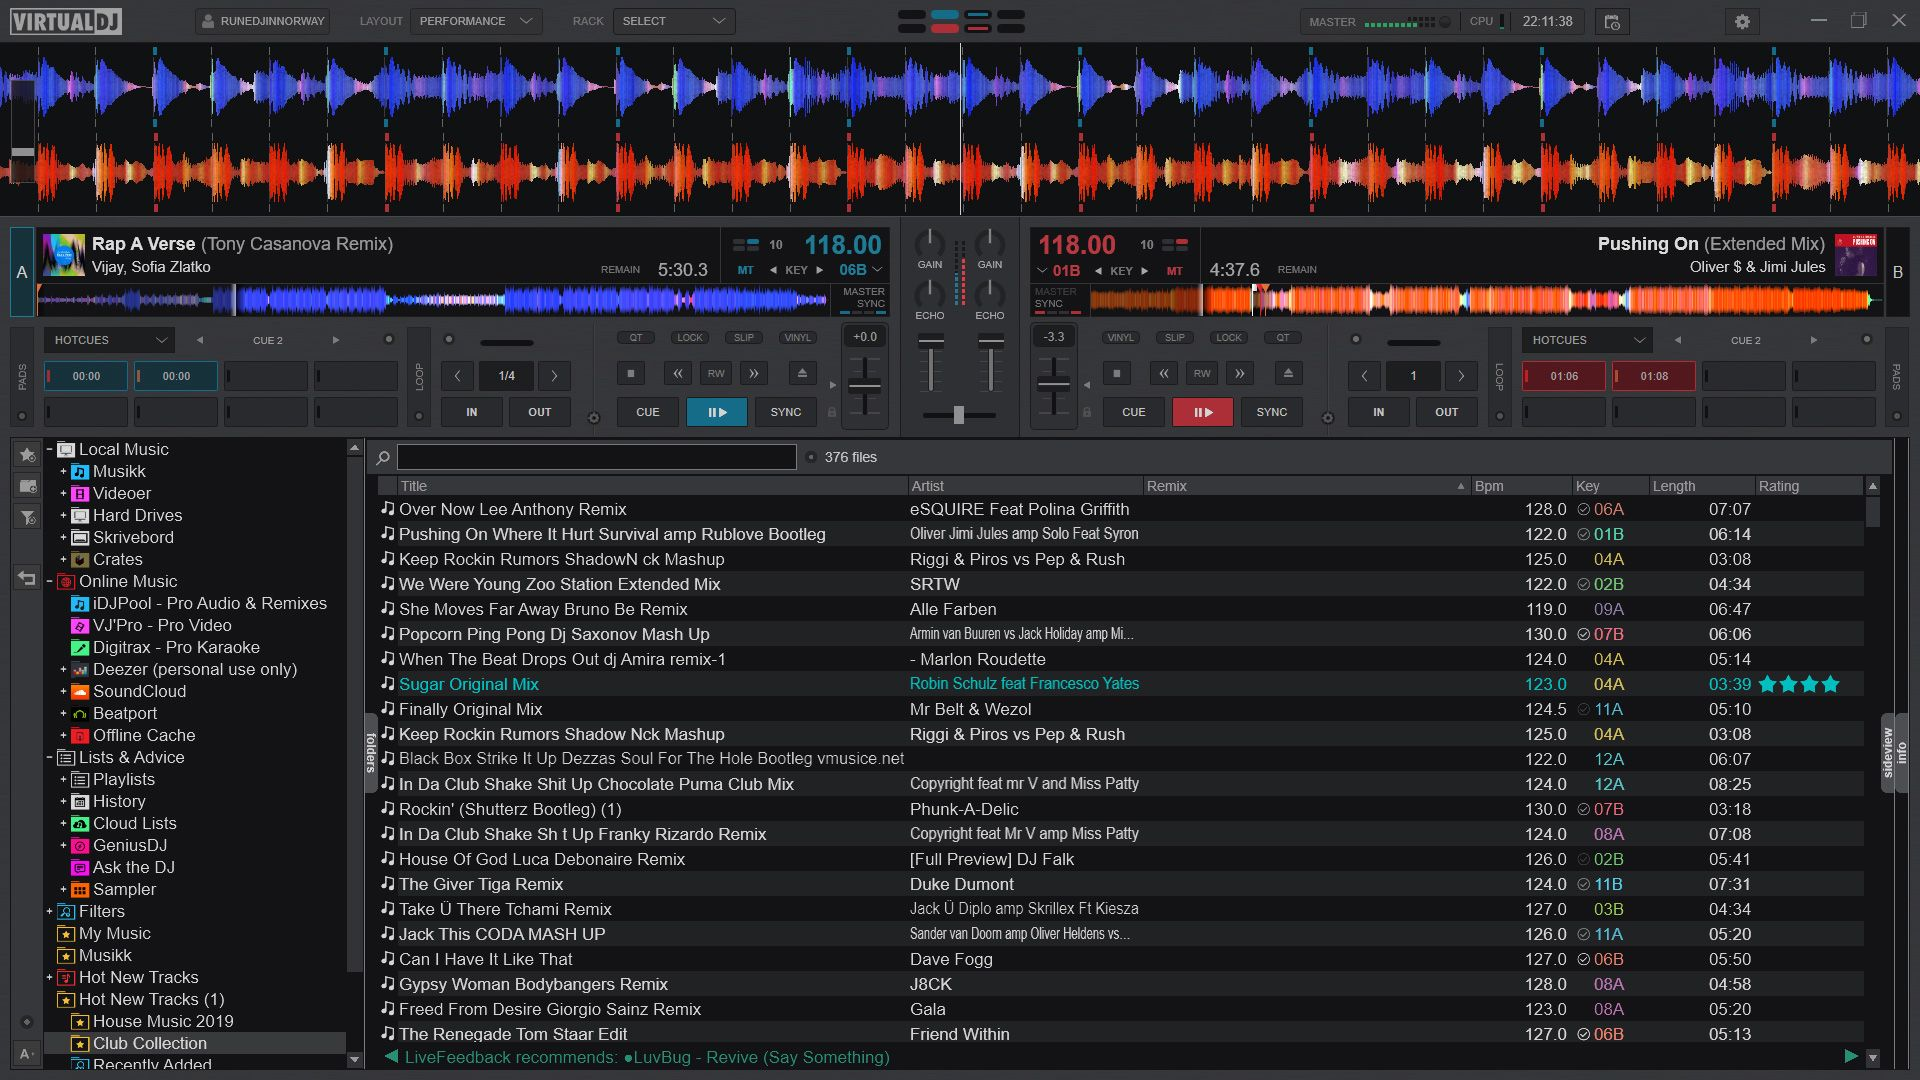 VIRTUAL DJ SOFTWARE The 1 Most Popular DJ Software in